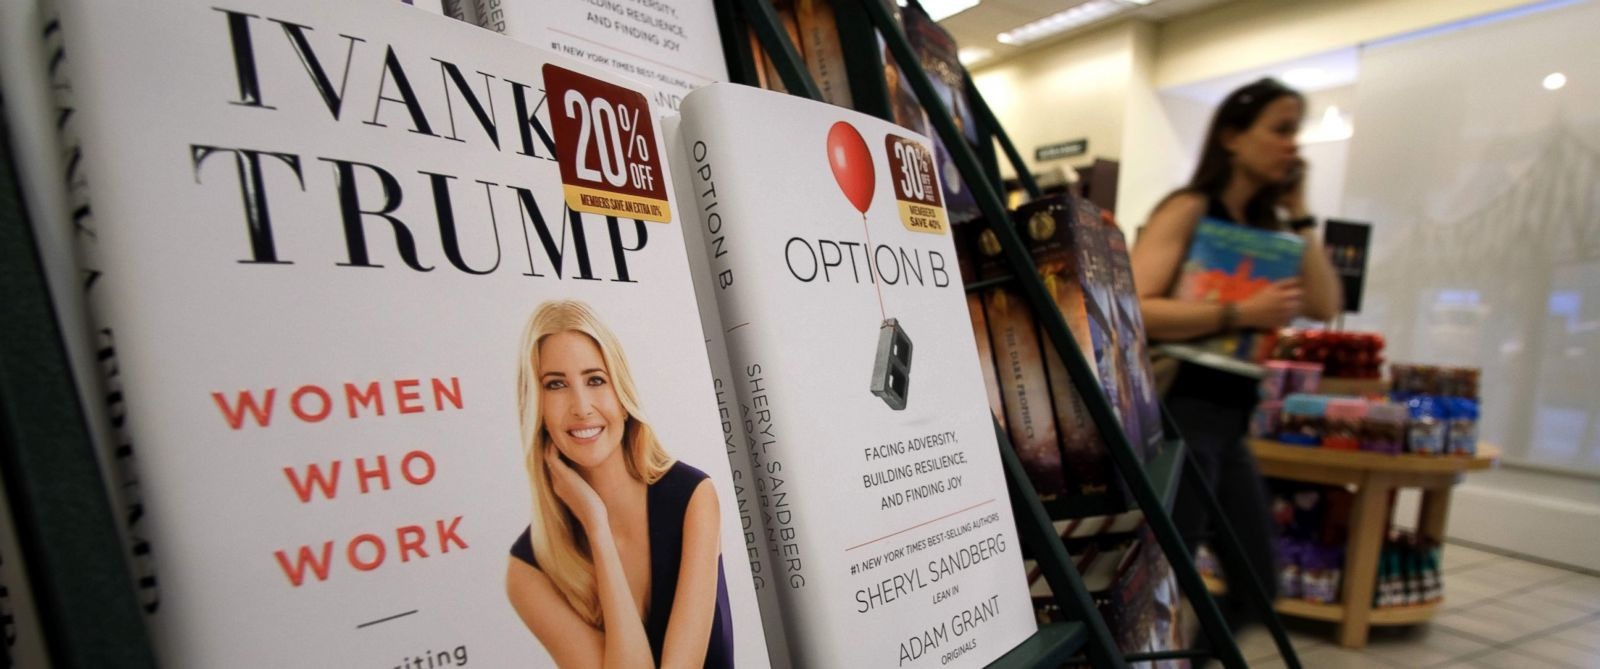 "PHOTO: A woman walks past a shelf displaying Ivanka Trumps book ""Women Who Work: Rewriting the Rules for Success"" at a Barnes and Noble bookstore in New York, May 2, 2017."